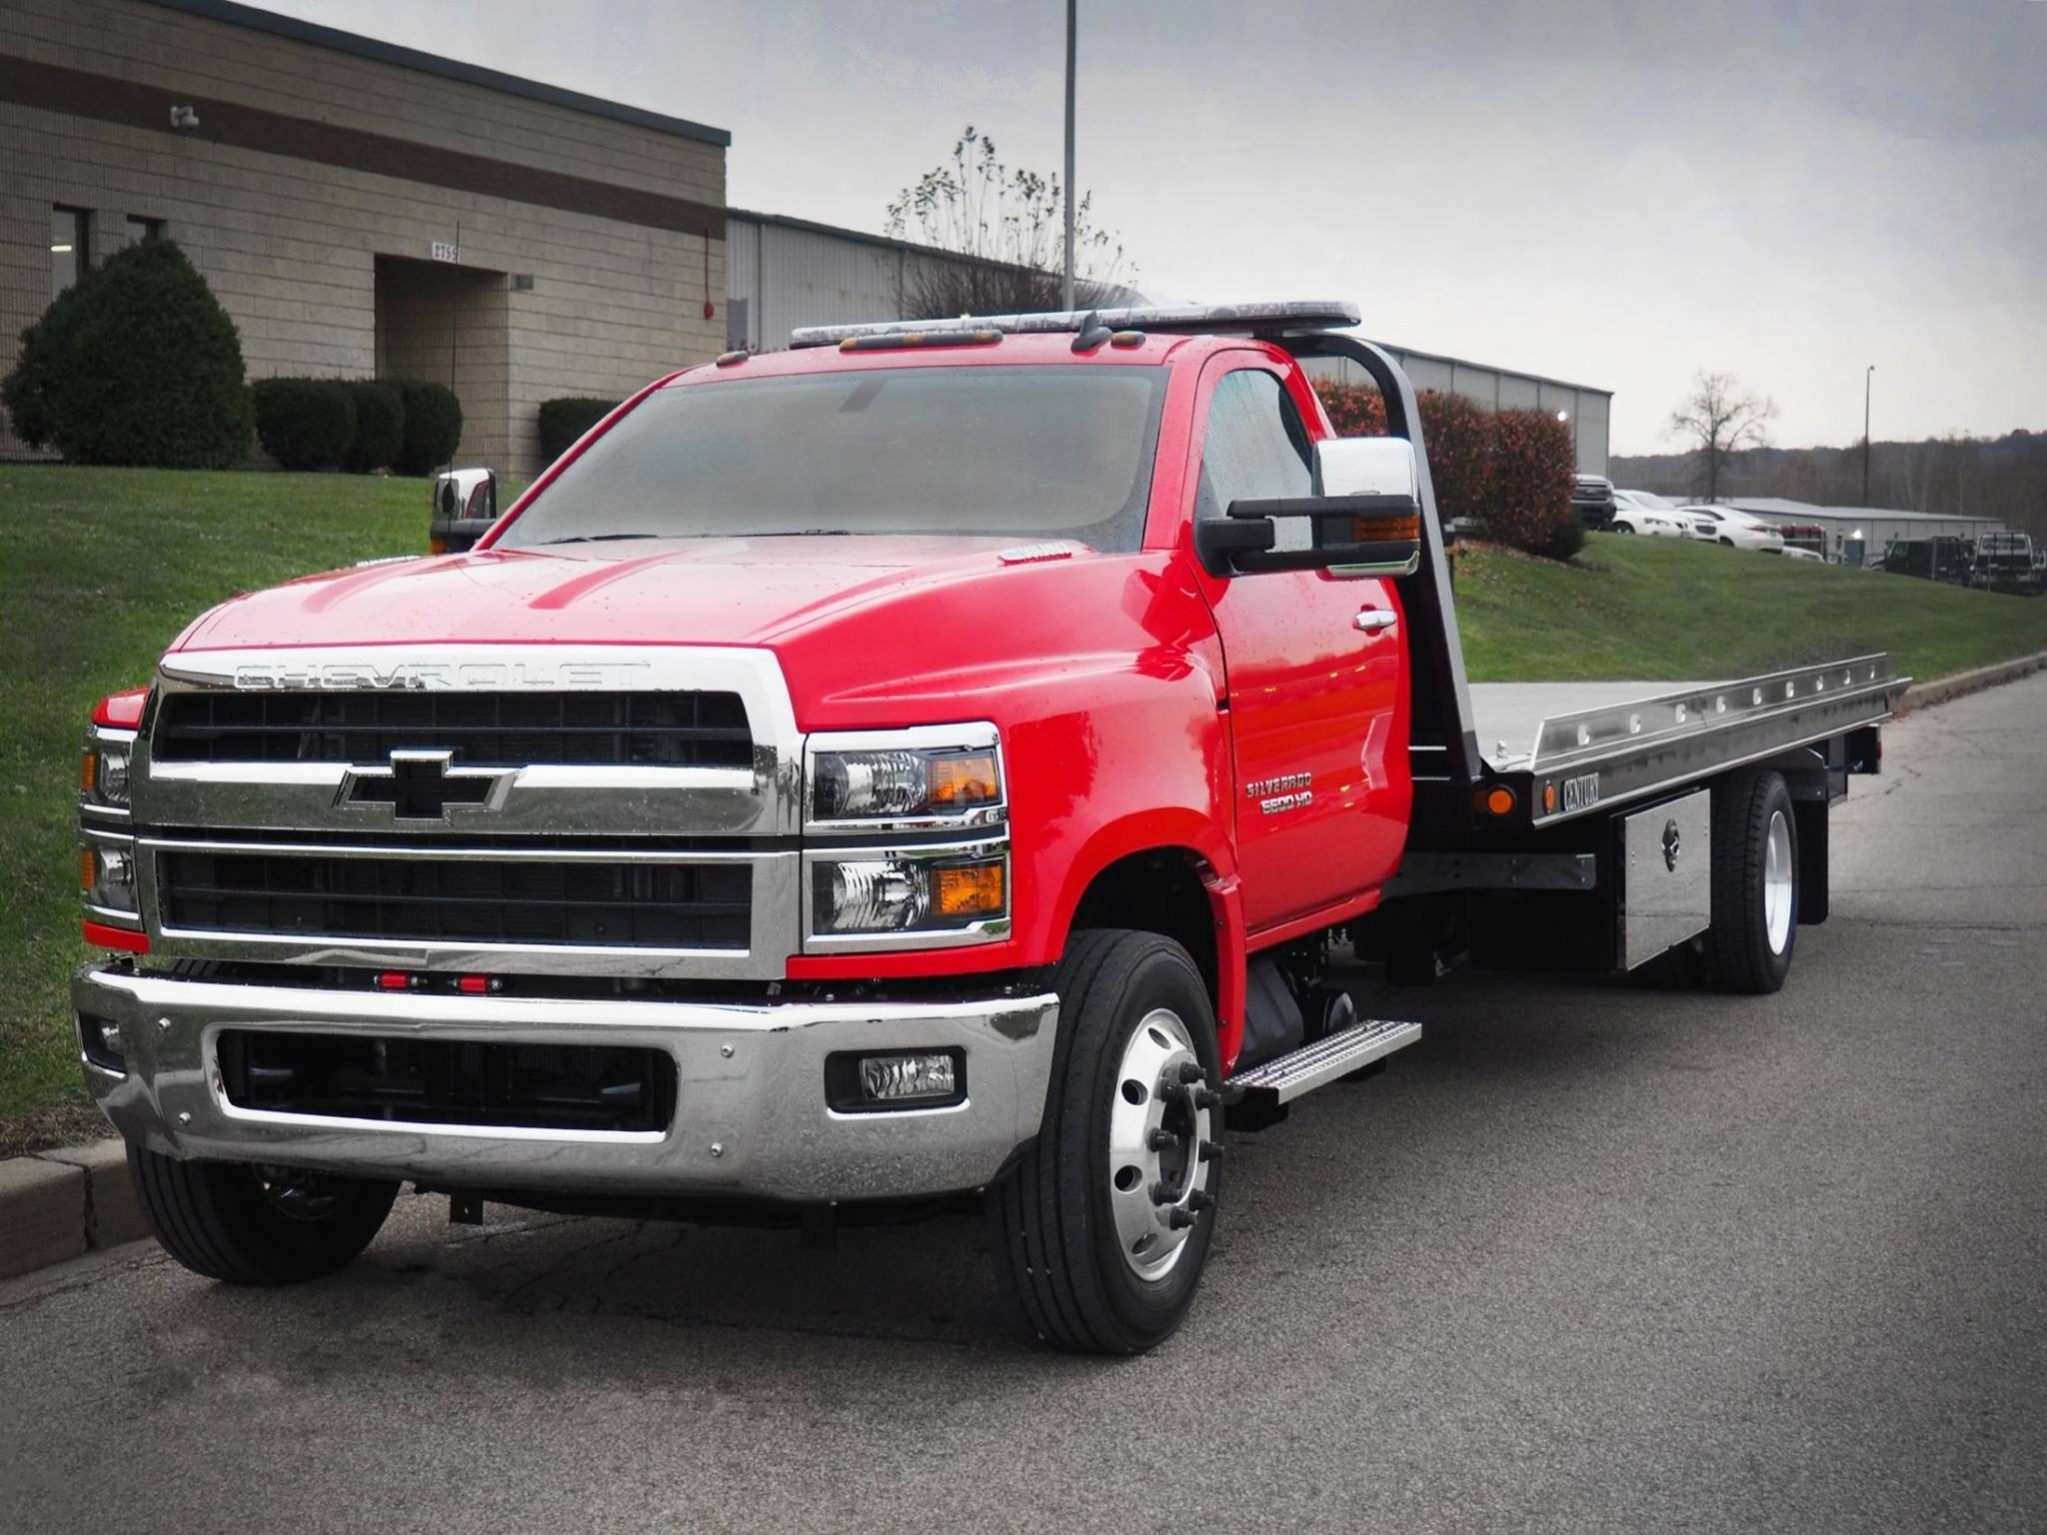 99 Best Review 2019 Chevrolet 5500 Truck Pricing for 2019 Chevrolet 5500 Truck